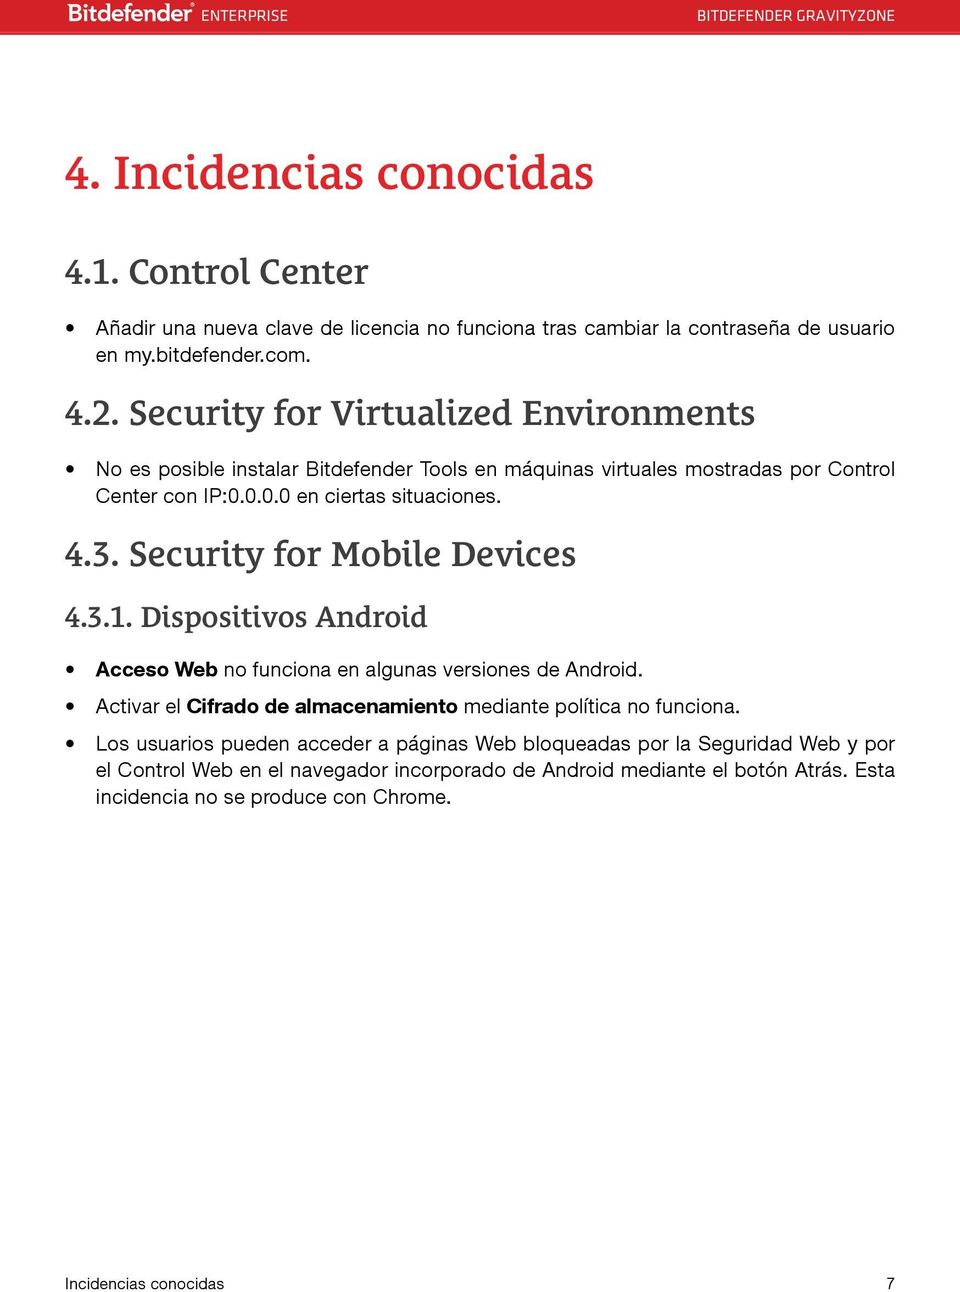 Security for Mobile Devices 4.3.1. Dispositivos Android Acceso Web no funciona en algunas versiones de Android. Activar el Cifrado de almacenamiento mediante política no funciona.